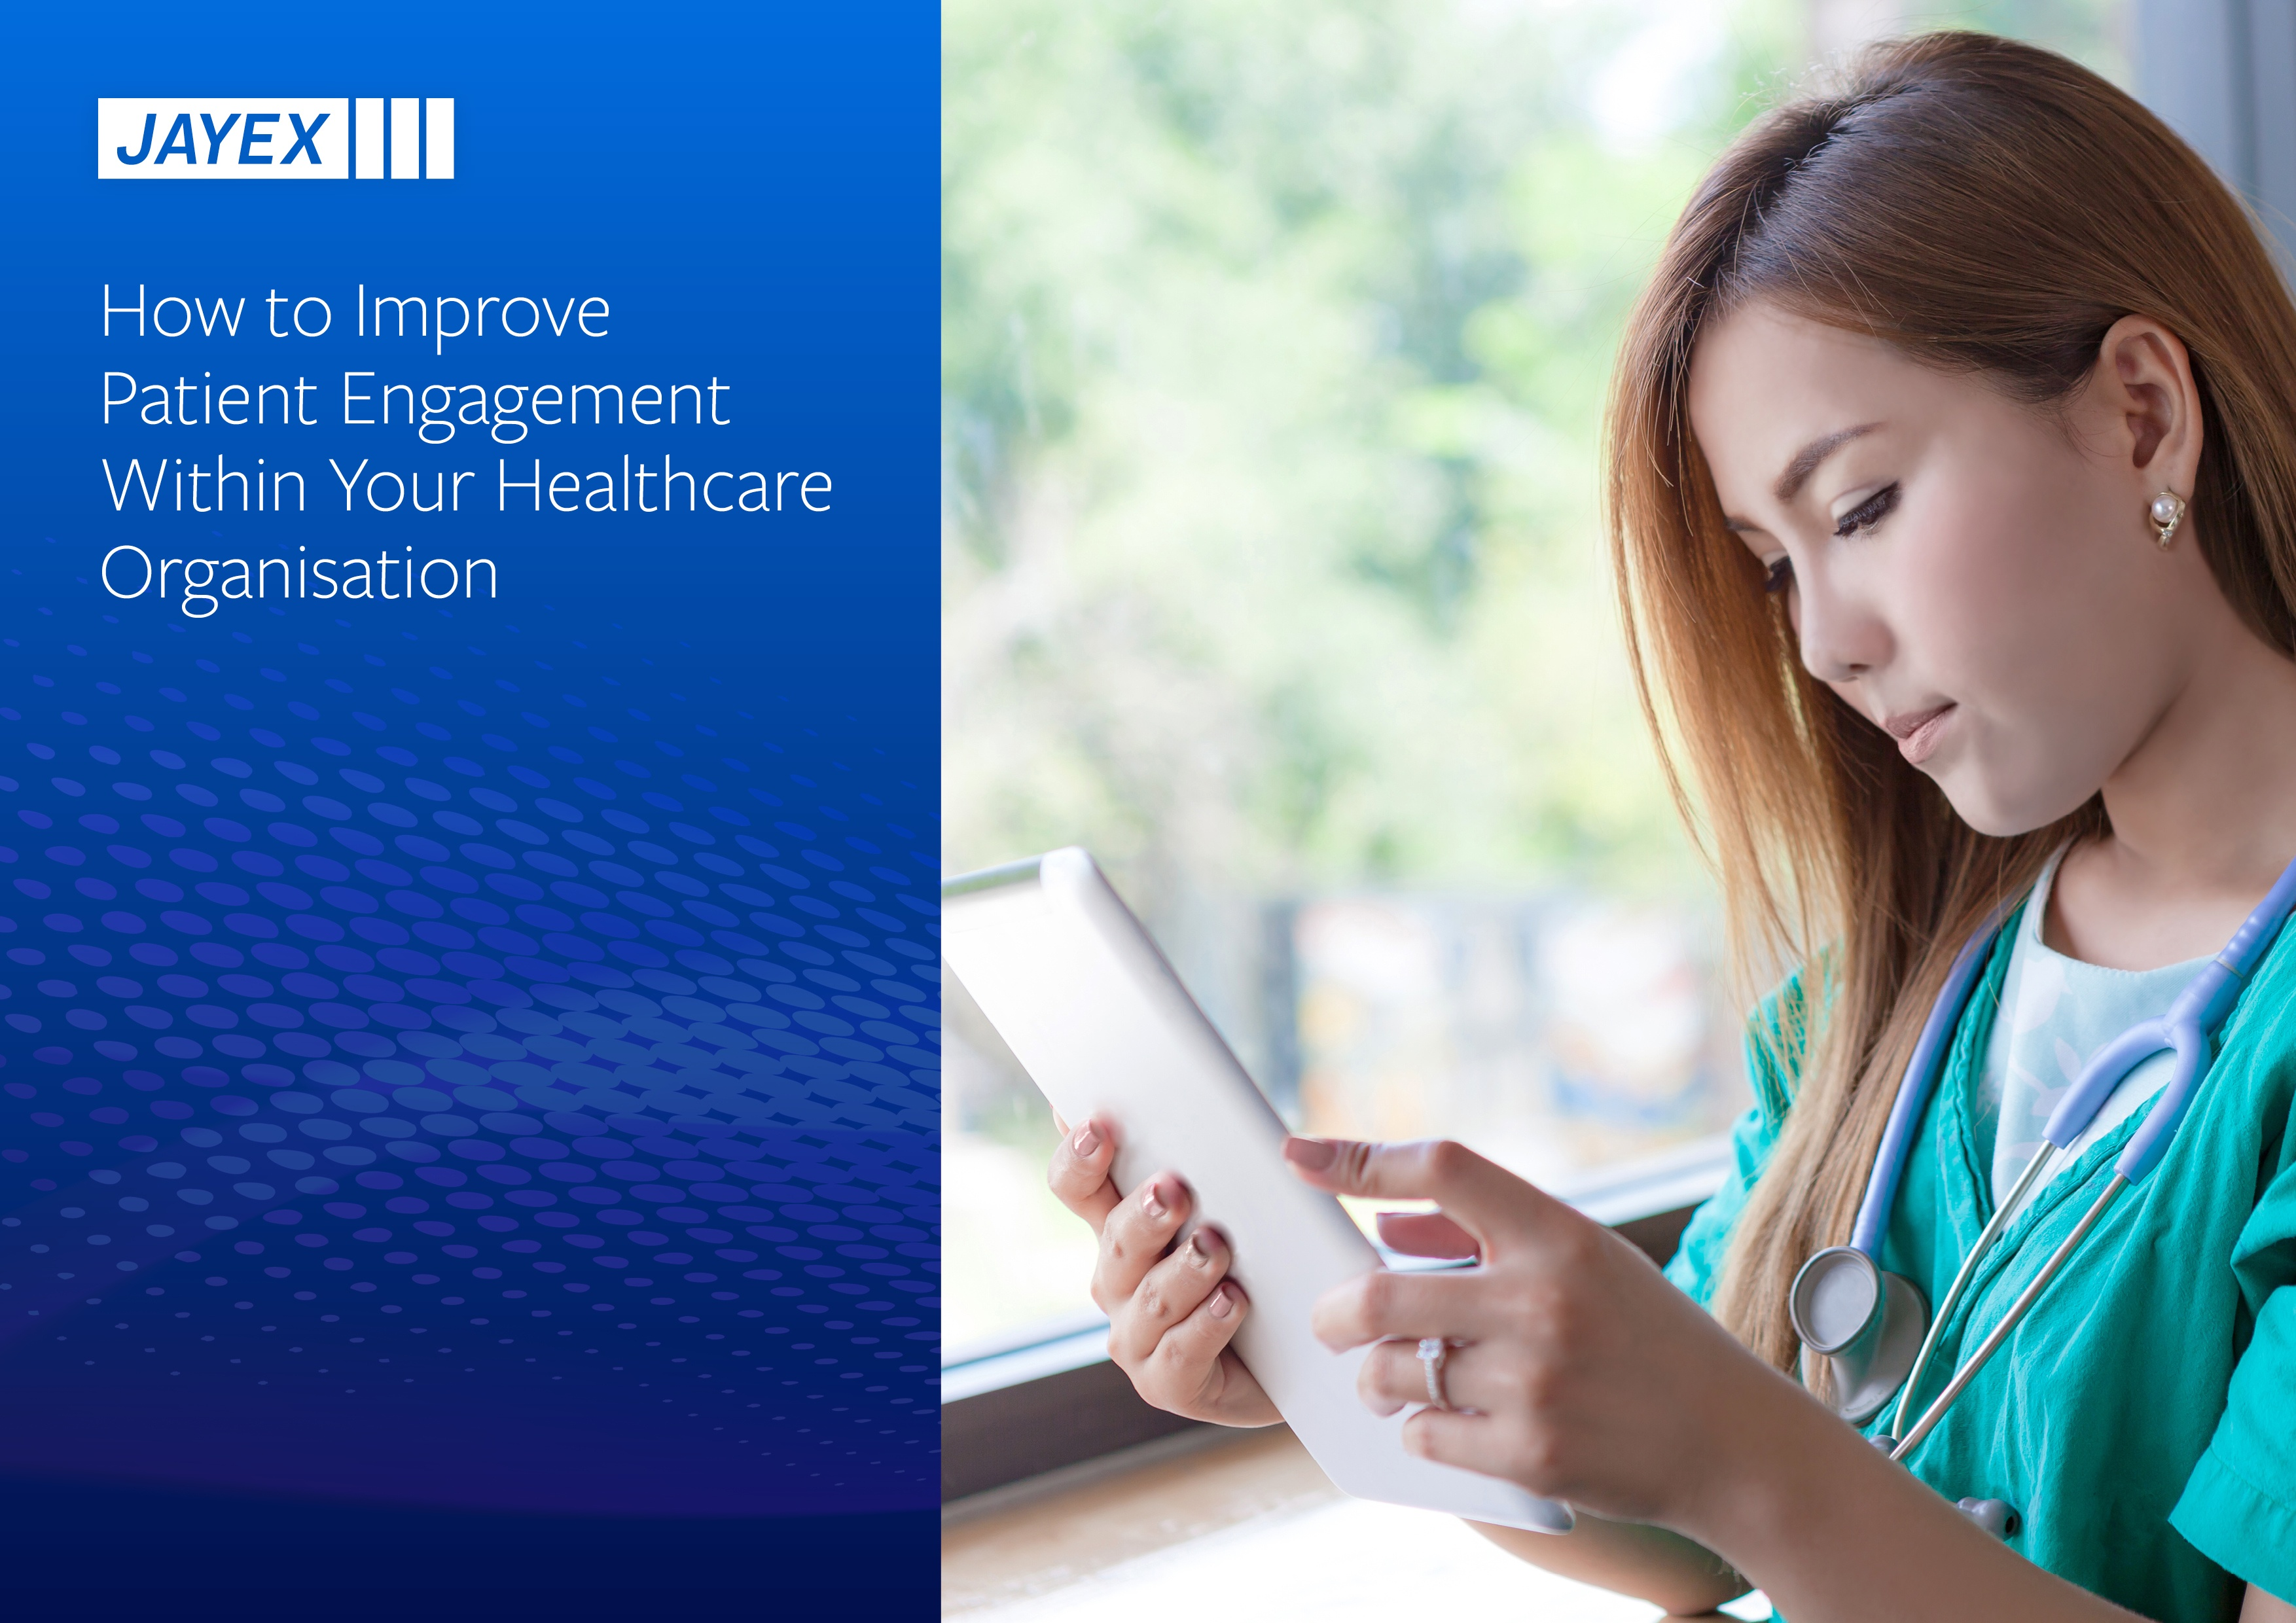 How to Improve Patient Engagement Within Your Healthcare Organisation